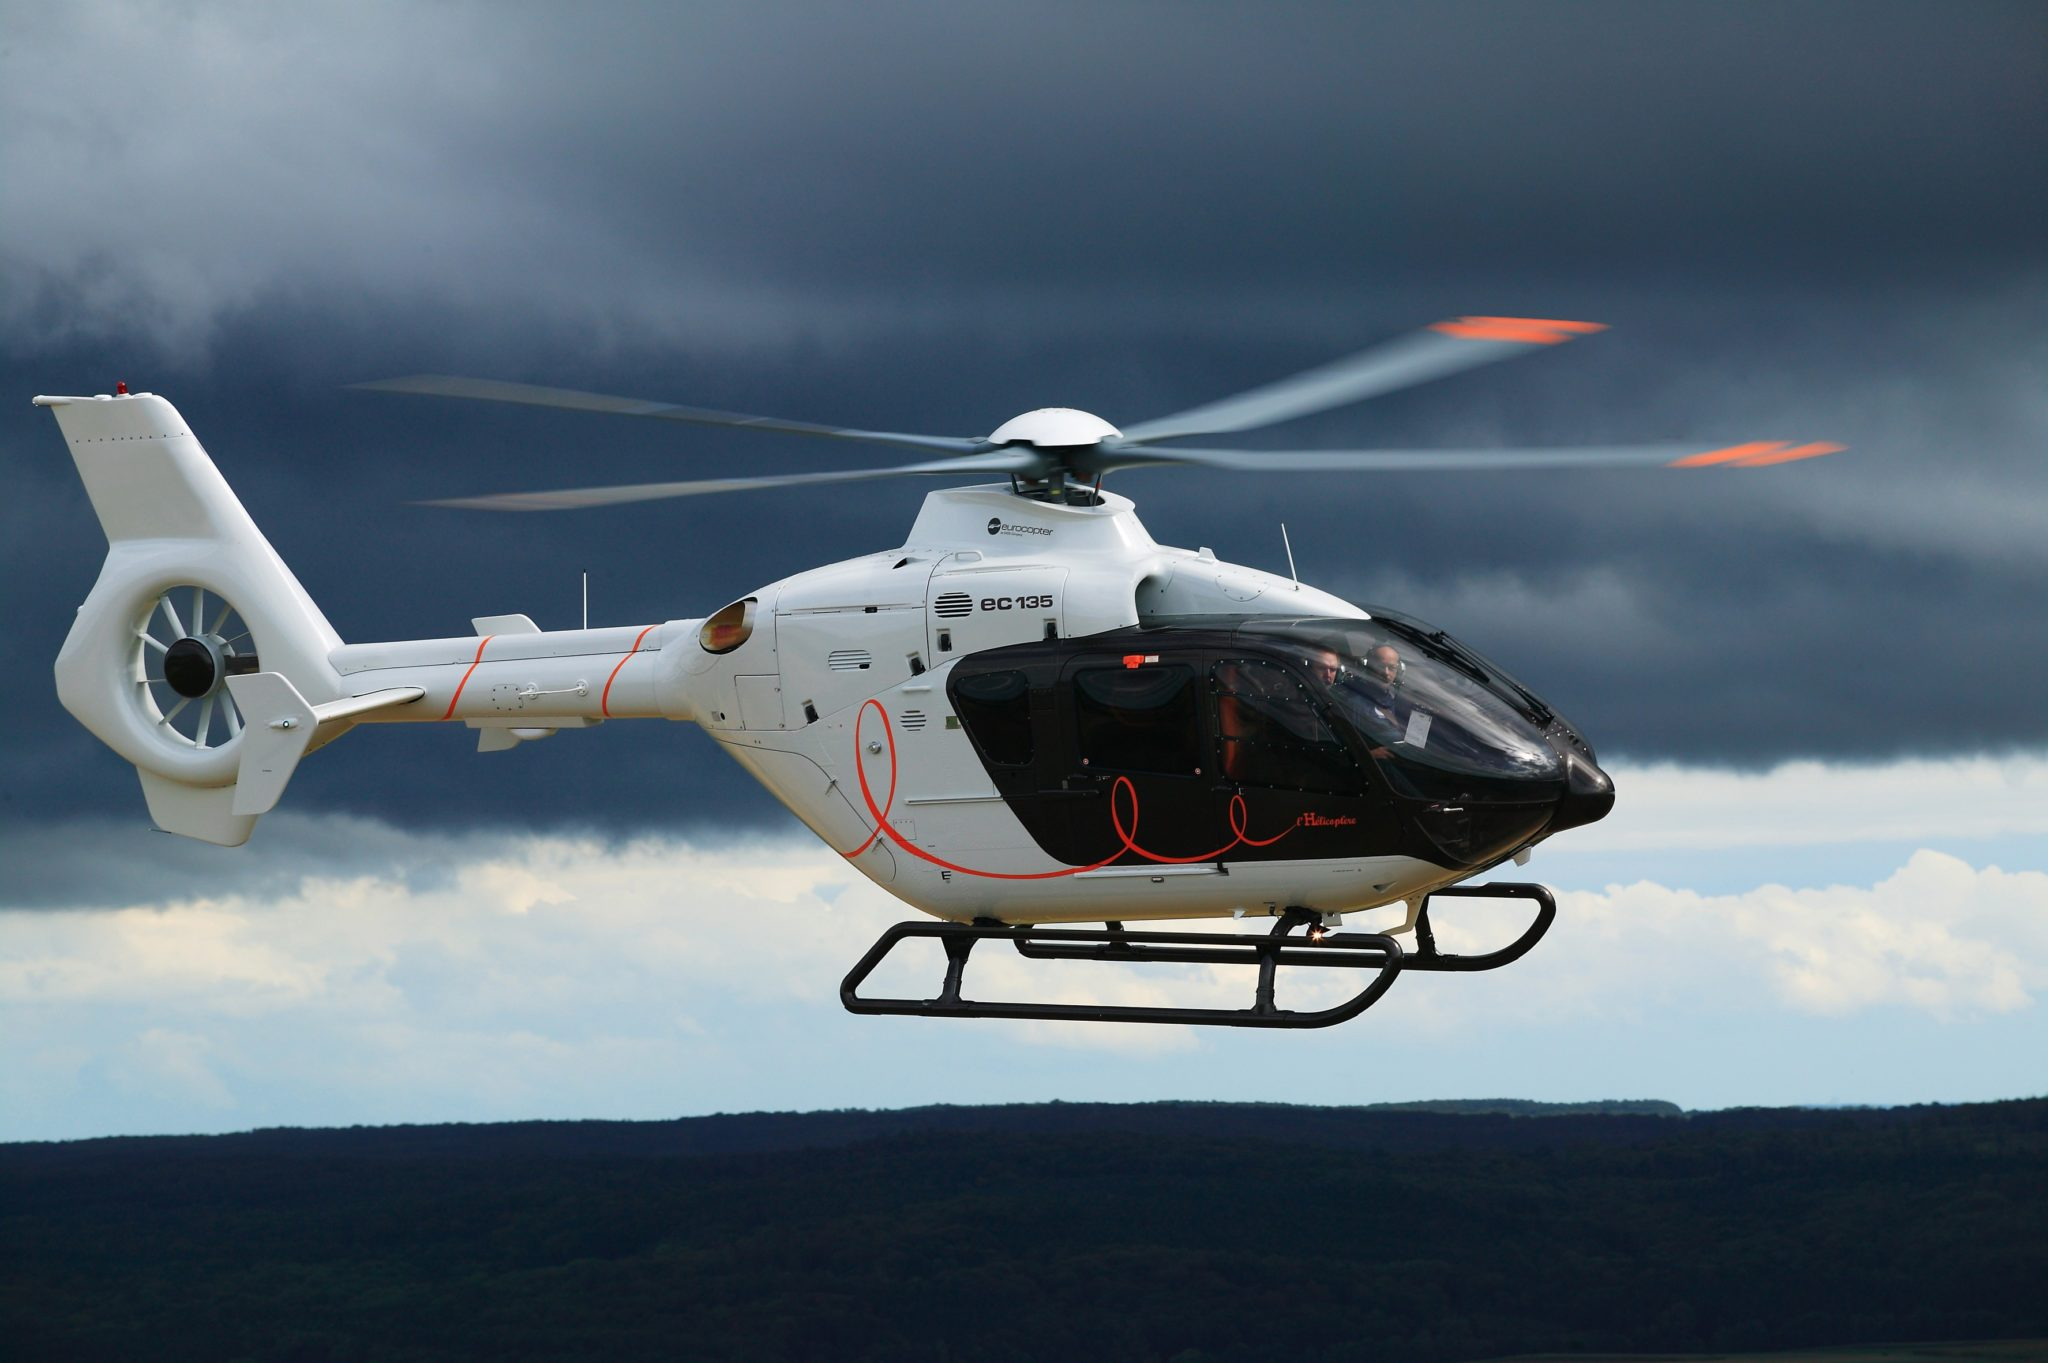 Although it shows the helicopter in its previous EC135 guise, this aircraft represents the Hermès fit. Image: Airbus